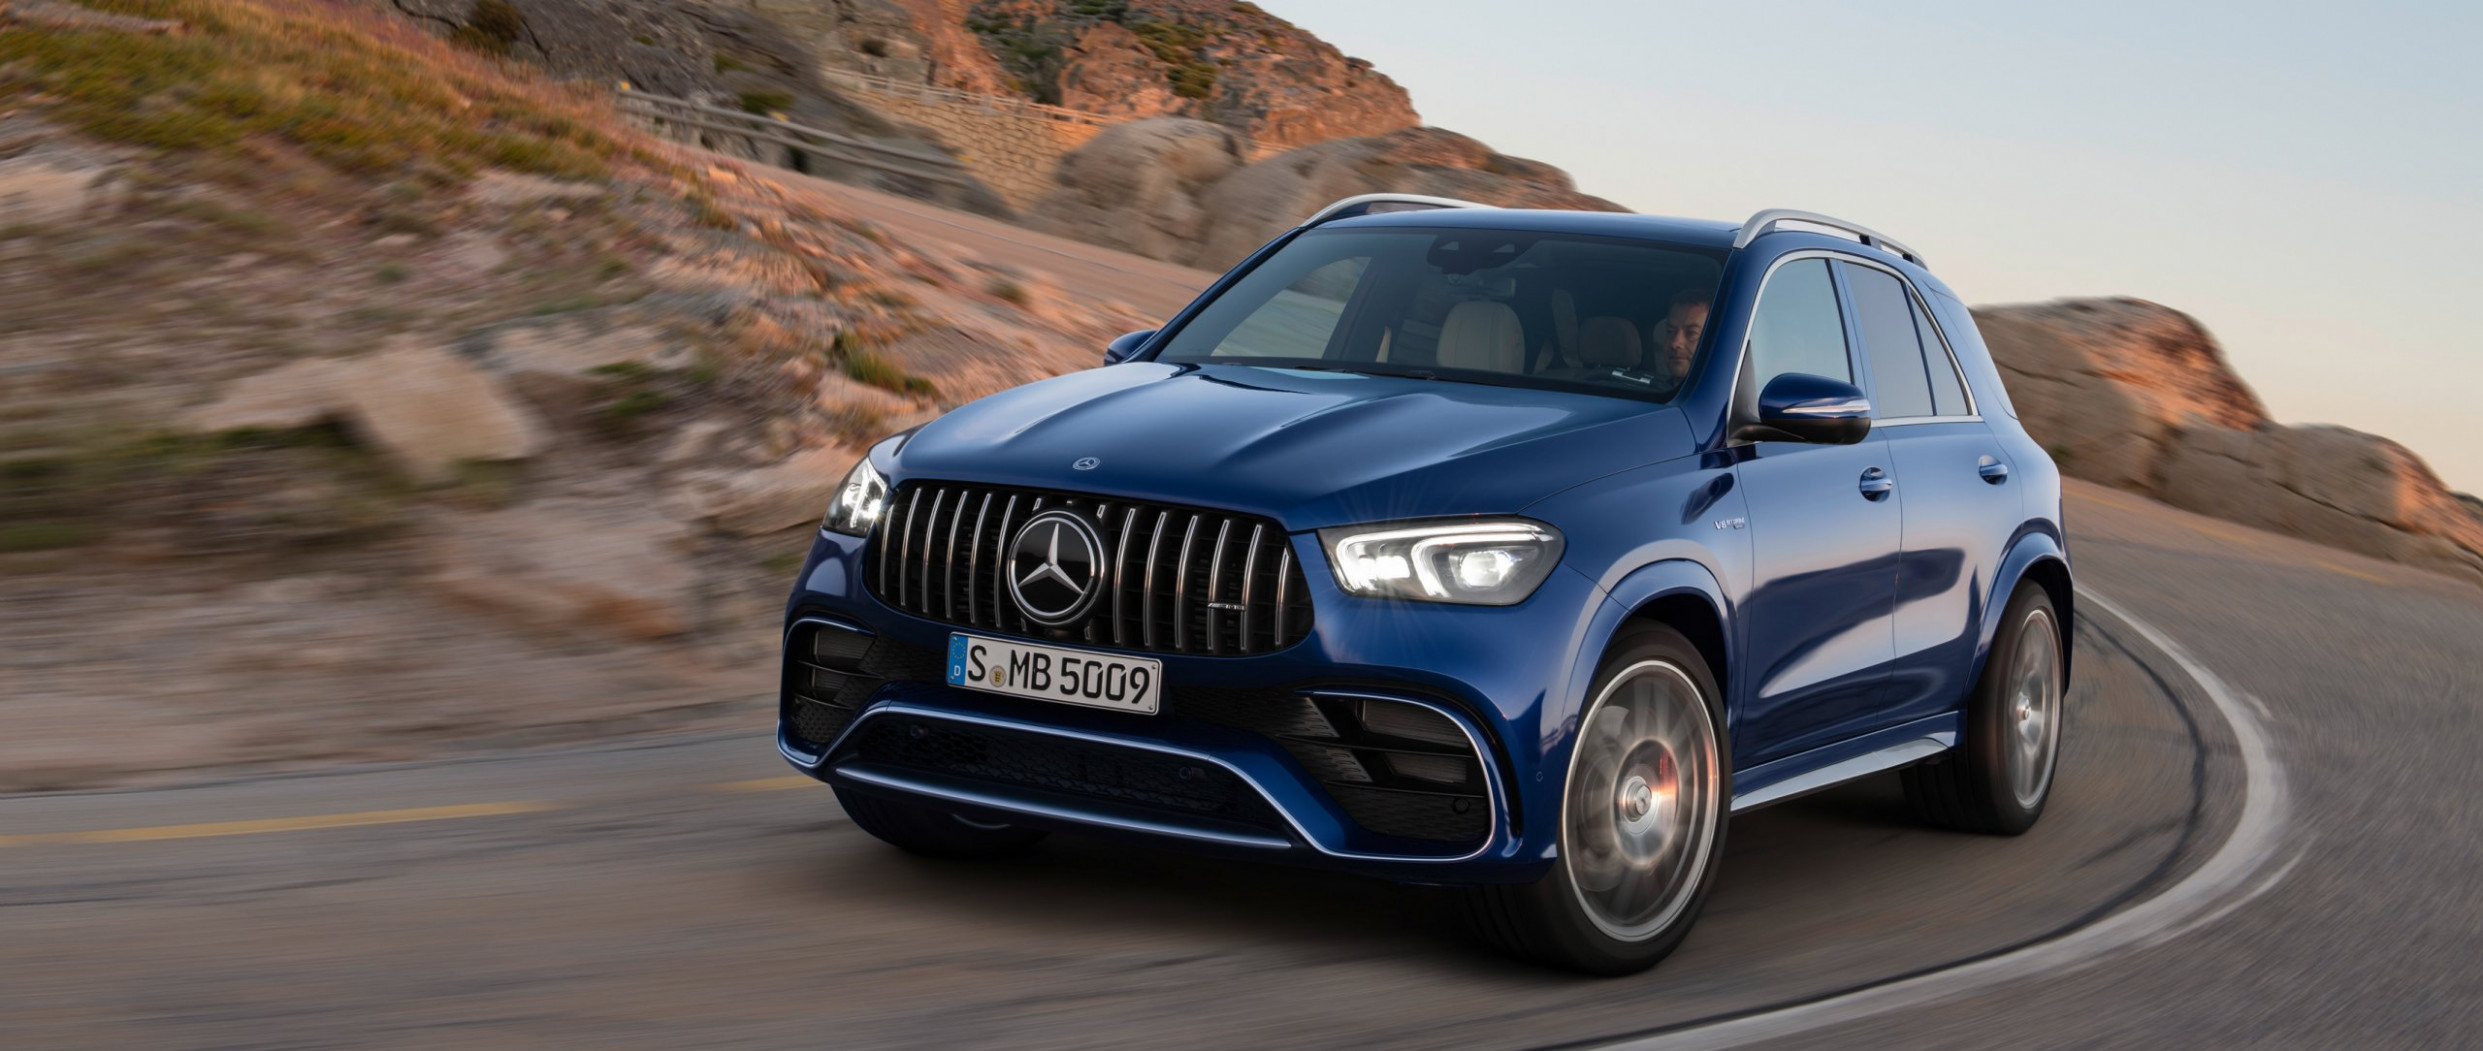 The new Mercedes-AMG GLE 5 5MATIC+ and GLE 5 S 5MATIC+